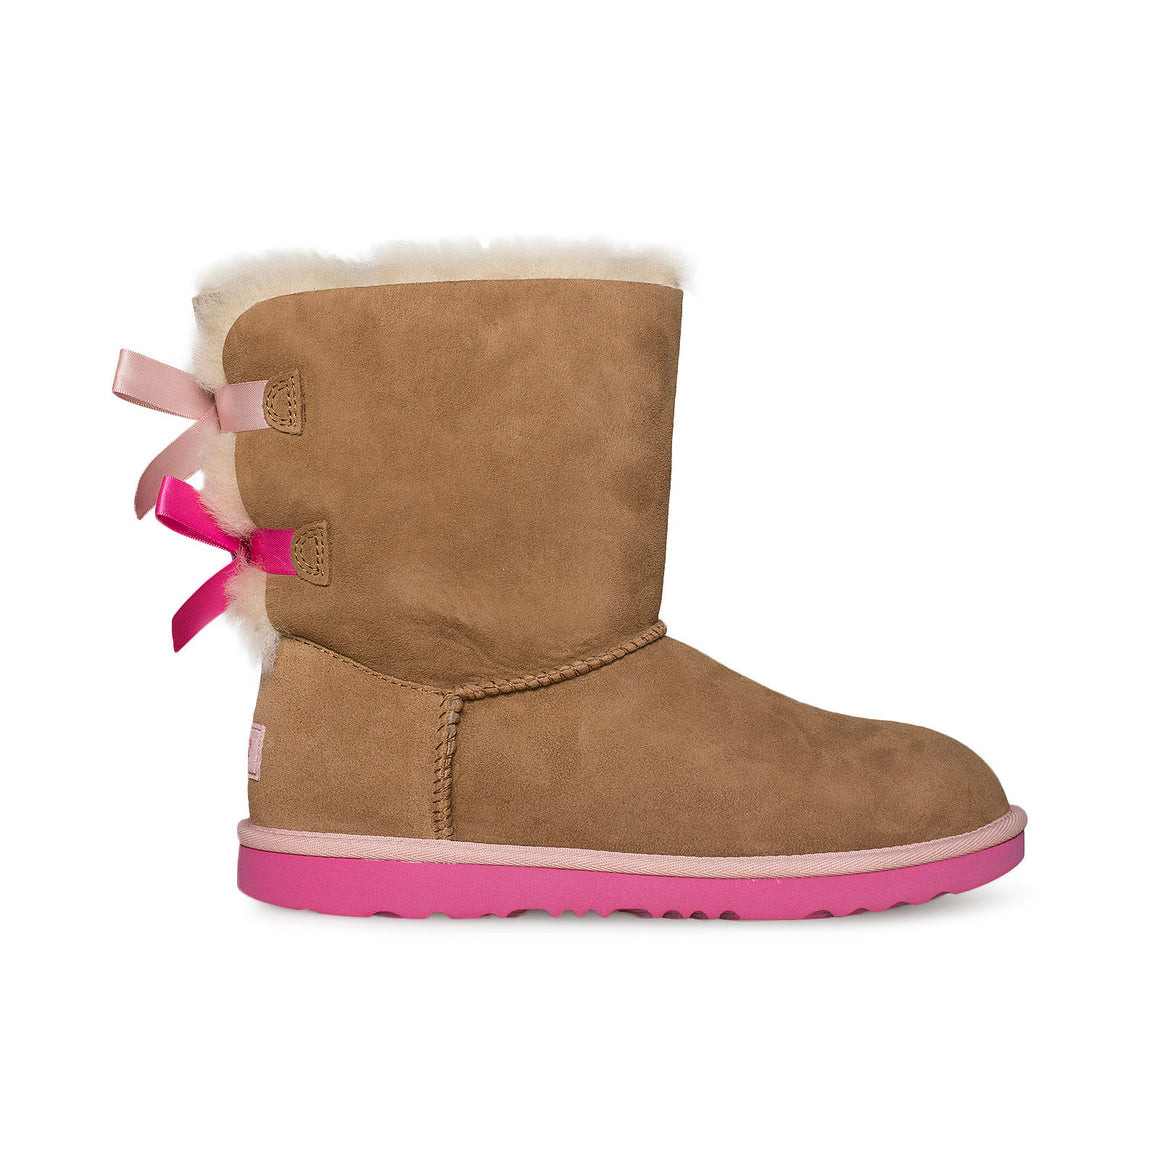 UGG Bailey Bow II Chestnut / Pink Azalea Boots - Youth